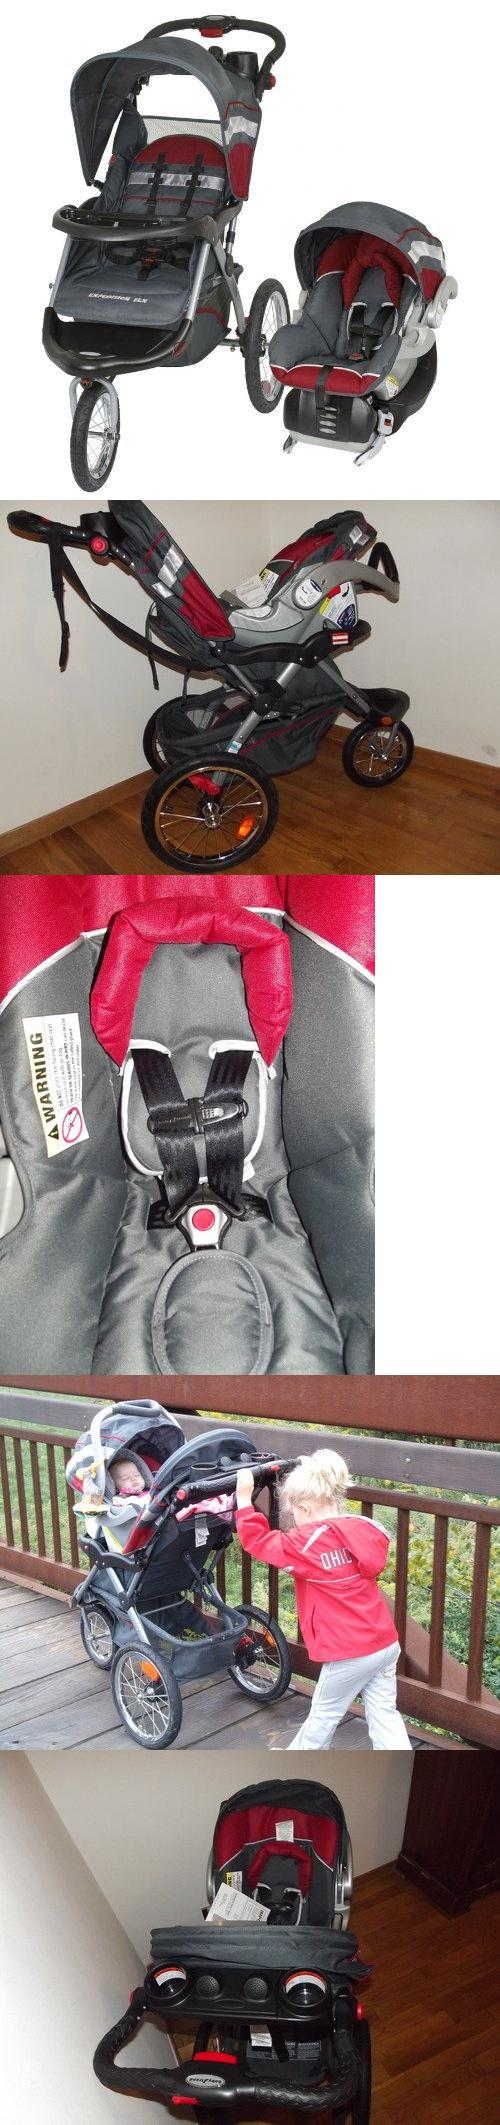 Baby Trend Expedition ELX Jogger Travel System Baltic